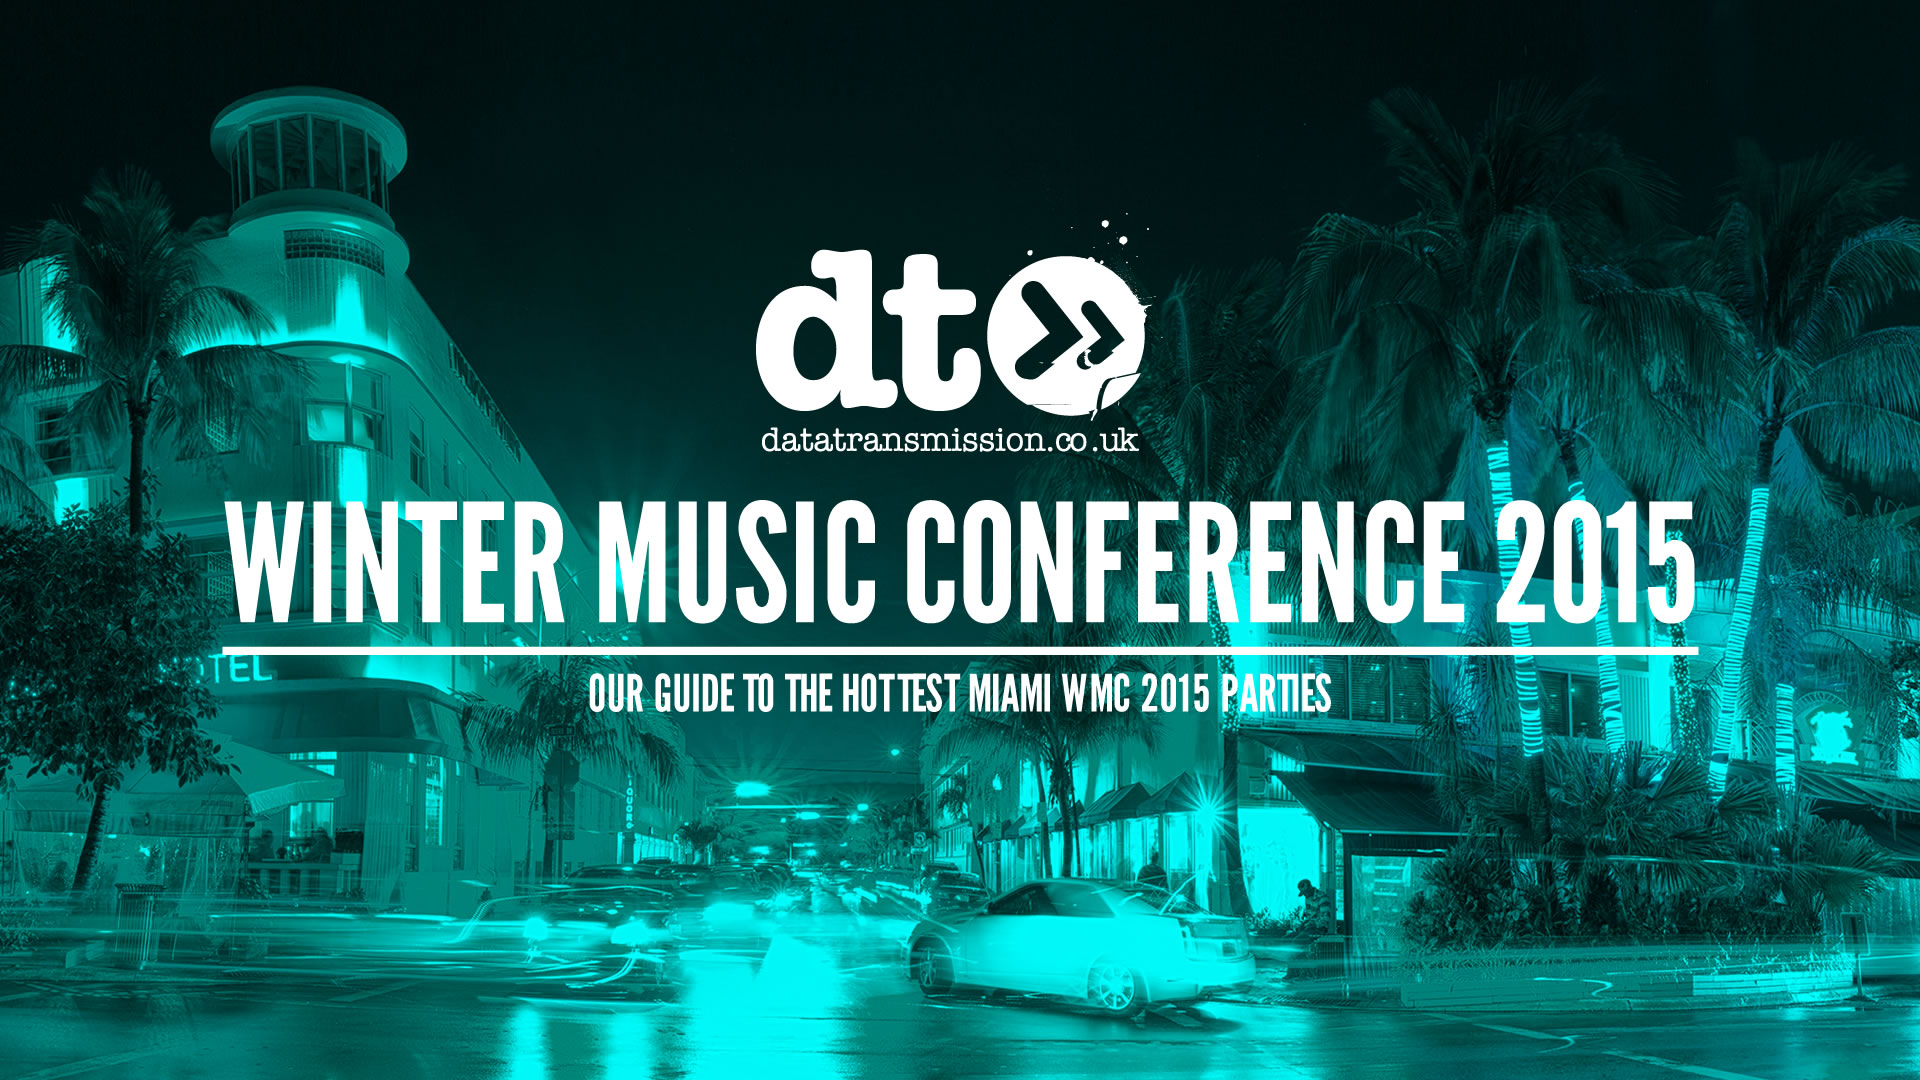 Victor Calderone, Dance Department, Detlef - Descend - MMW 2018 Miami - 21-Mar-2018